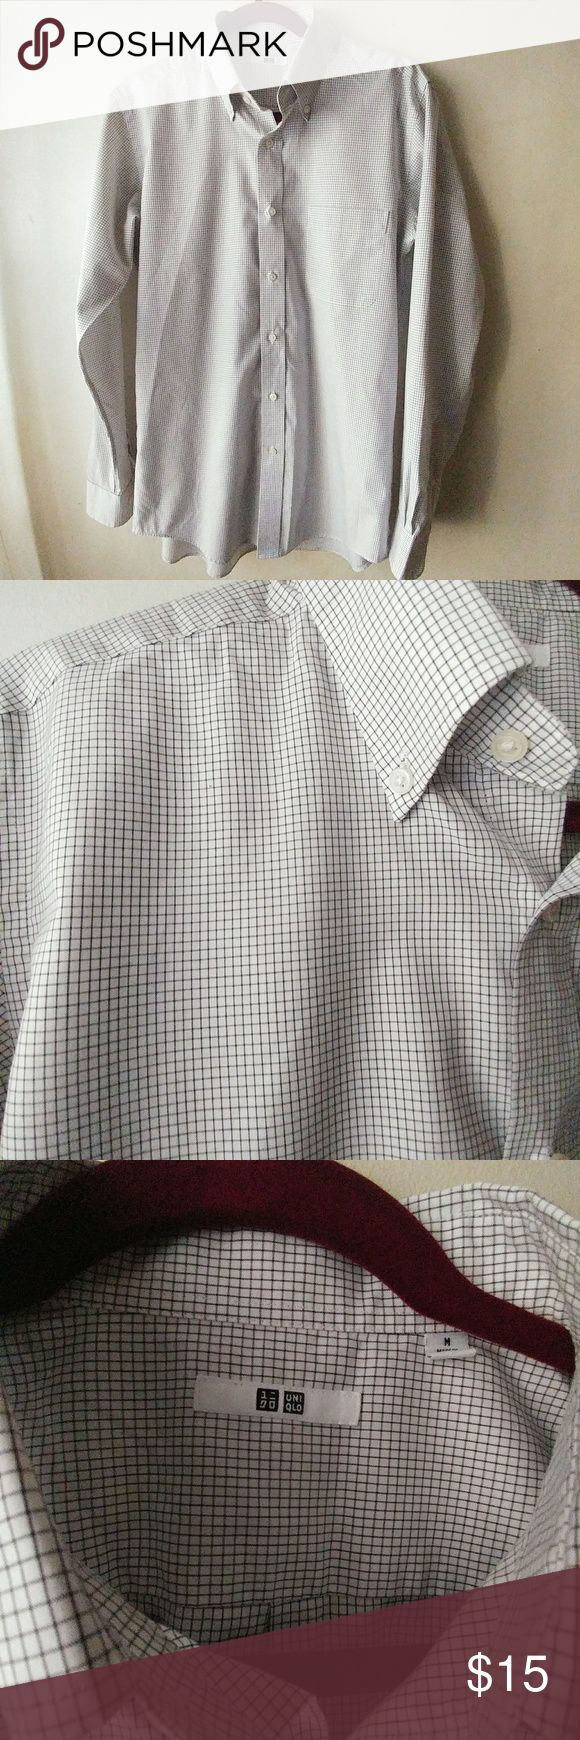 Uniqlo Mens Casual Button Down Shirt Superb condition, no ring around the the collar or cuffs, no stains, snags or pulls. Very good quality. 21 inches pit to pit, 25 inch sleeve, 30 inches in length. 18 inches across shoulders. If you have any questions, please feel free to ask. Uniqlo Shirts Casual Button Down Shirts